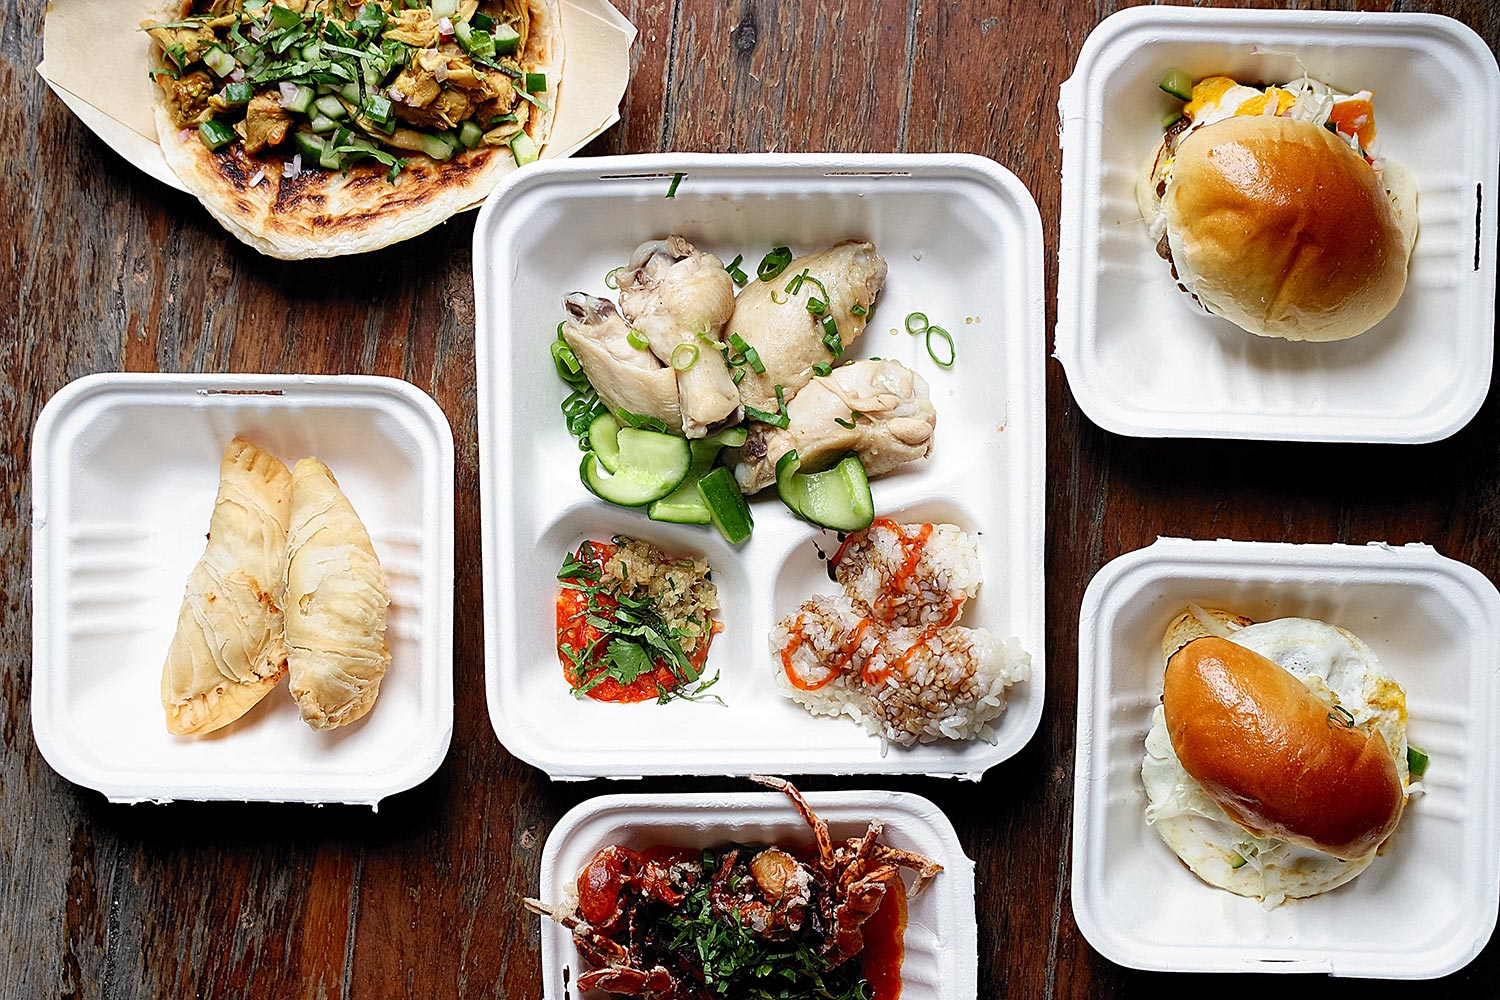 Aerial shot of our order from Yang's Malaysian Food Truck!